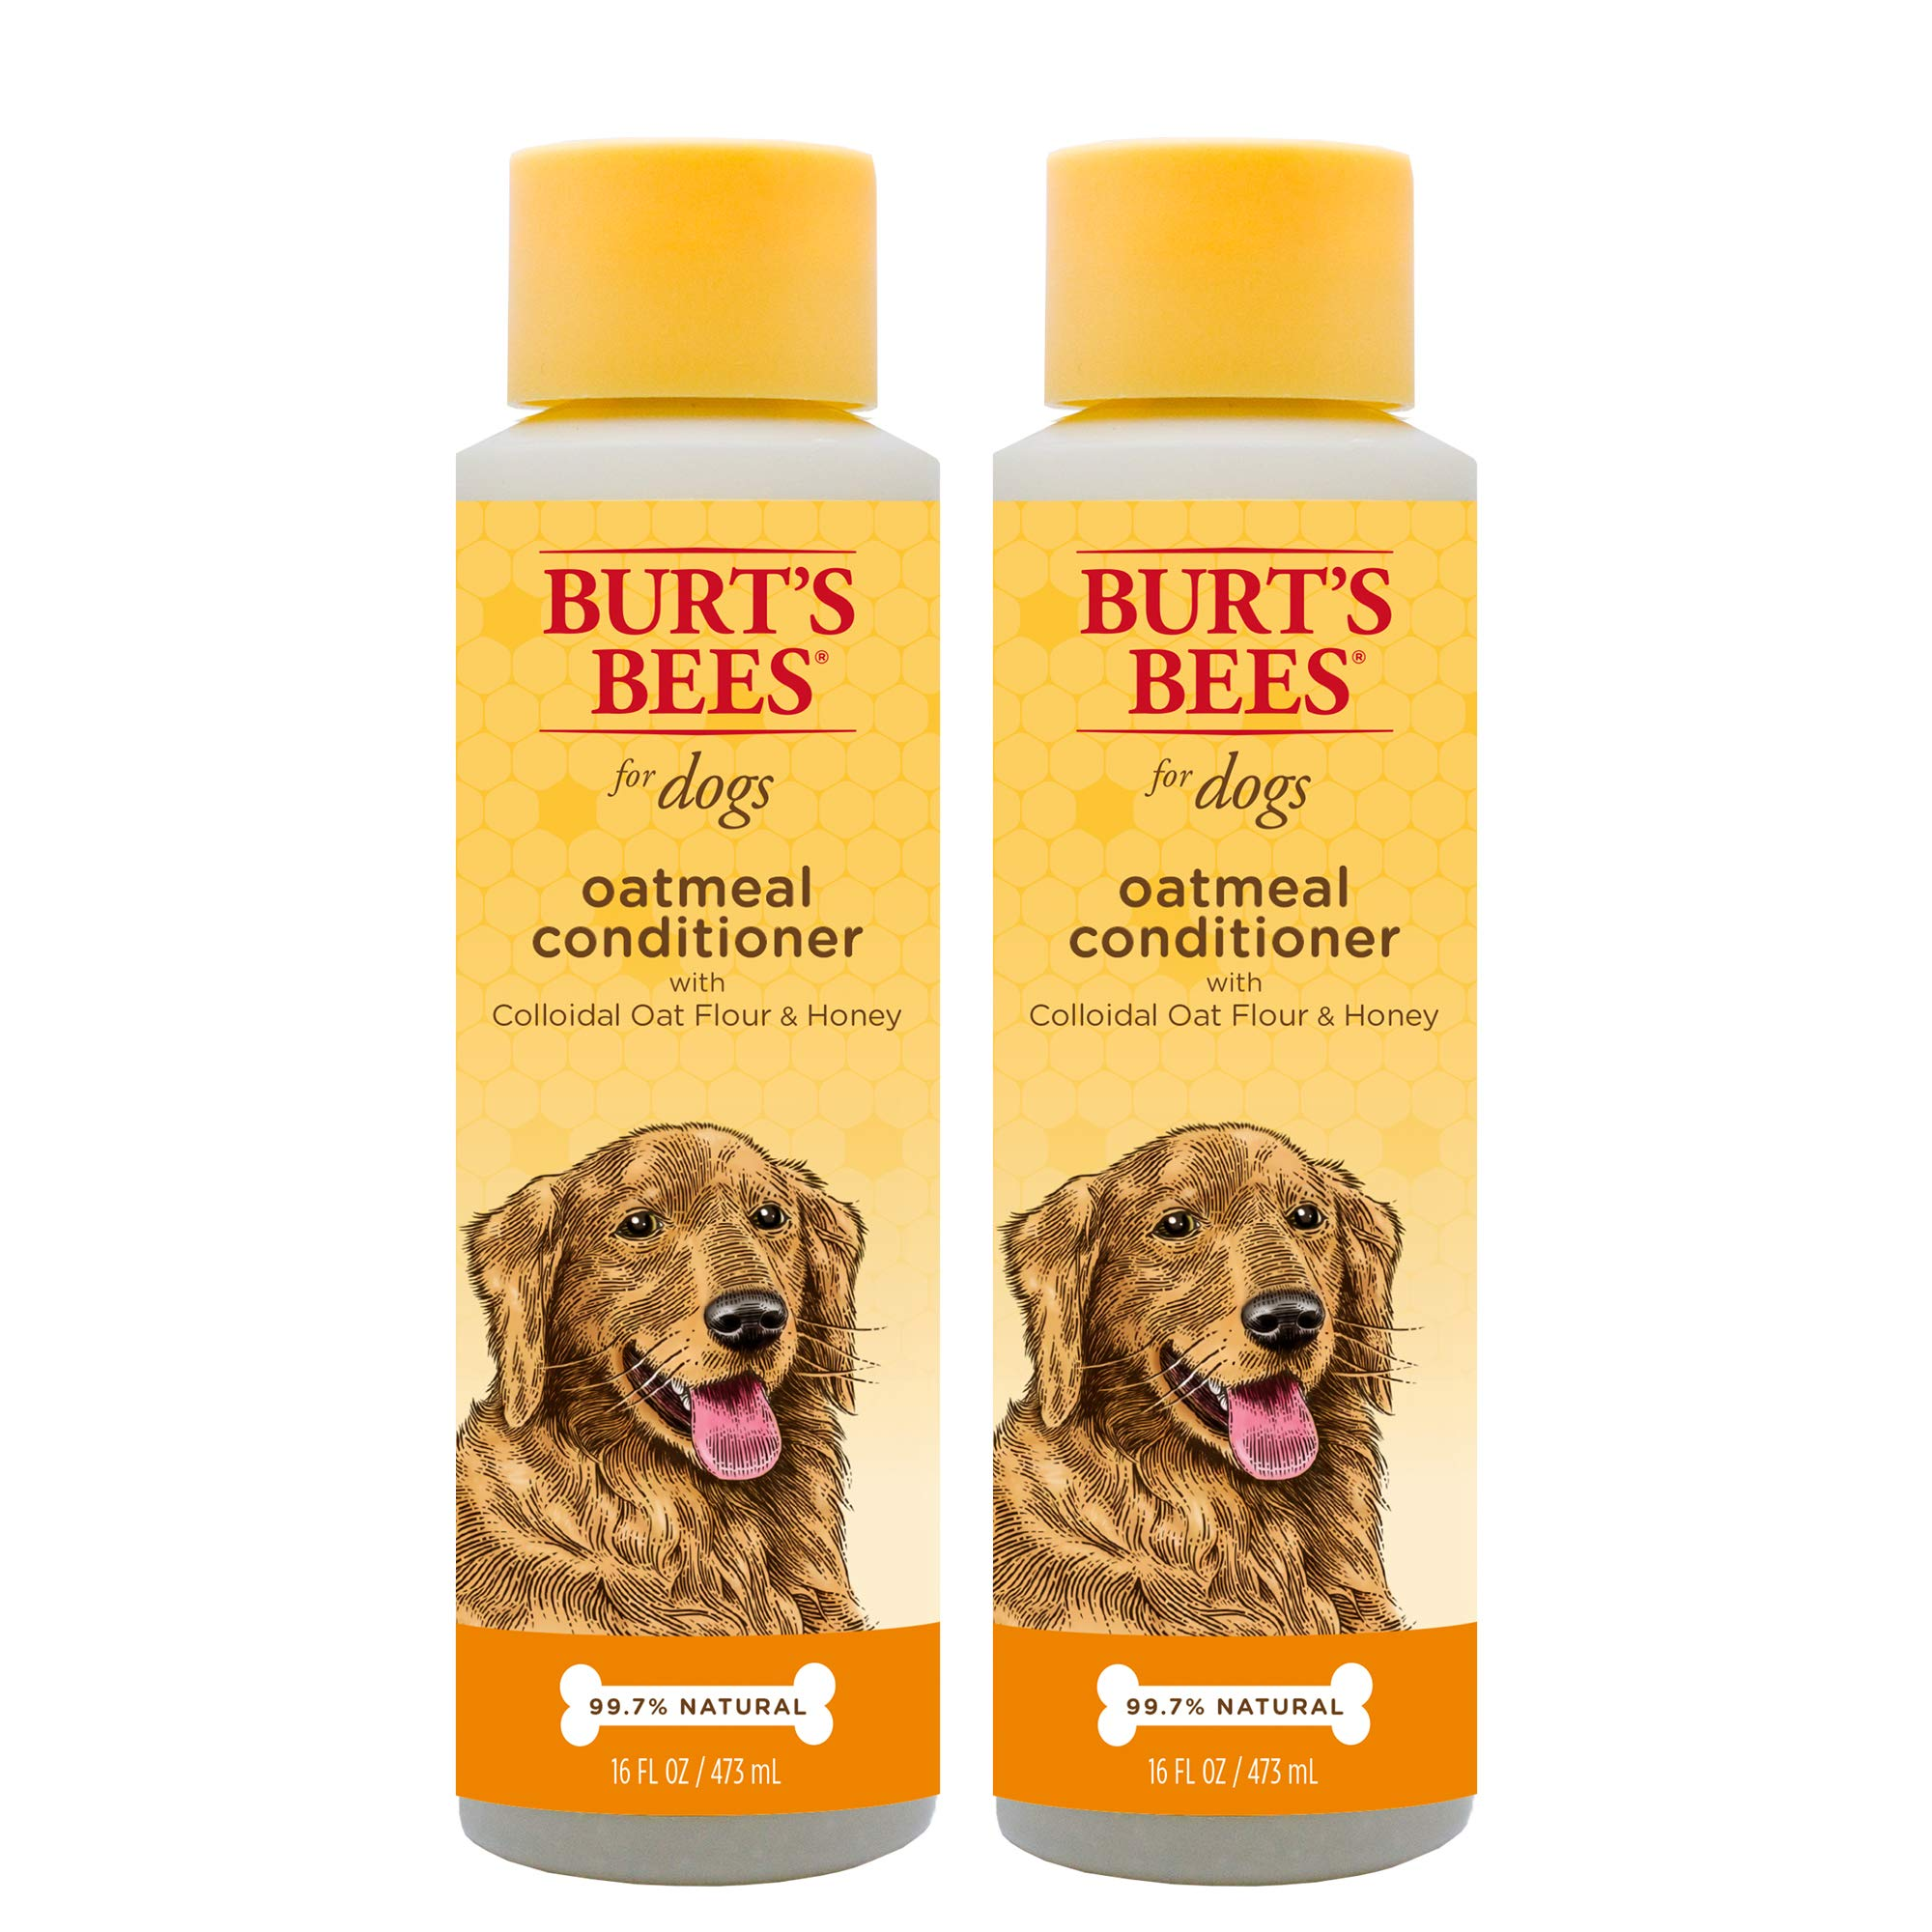 Burt's Bees for Dogs Natural Oatmeal Conditioner with Colloidal Oat Flour and Honey | Puppy and Dog Shampoo, 10 Ounces - 2 Pack by Burt's Bees for Pets